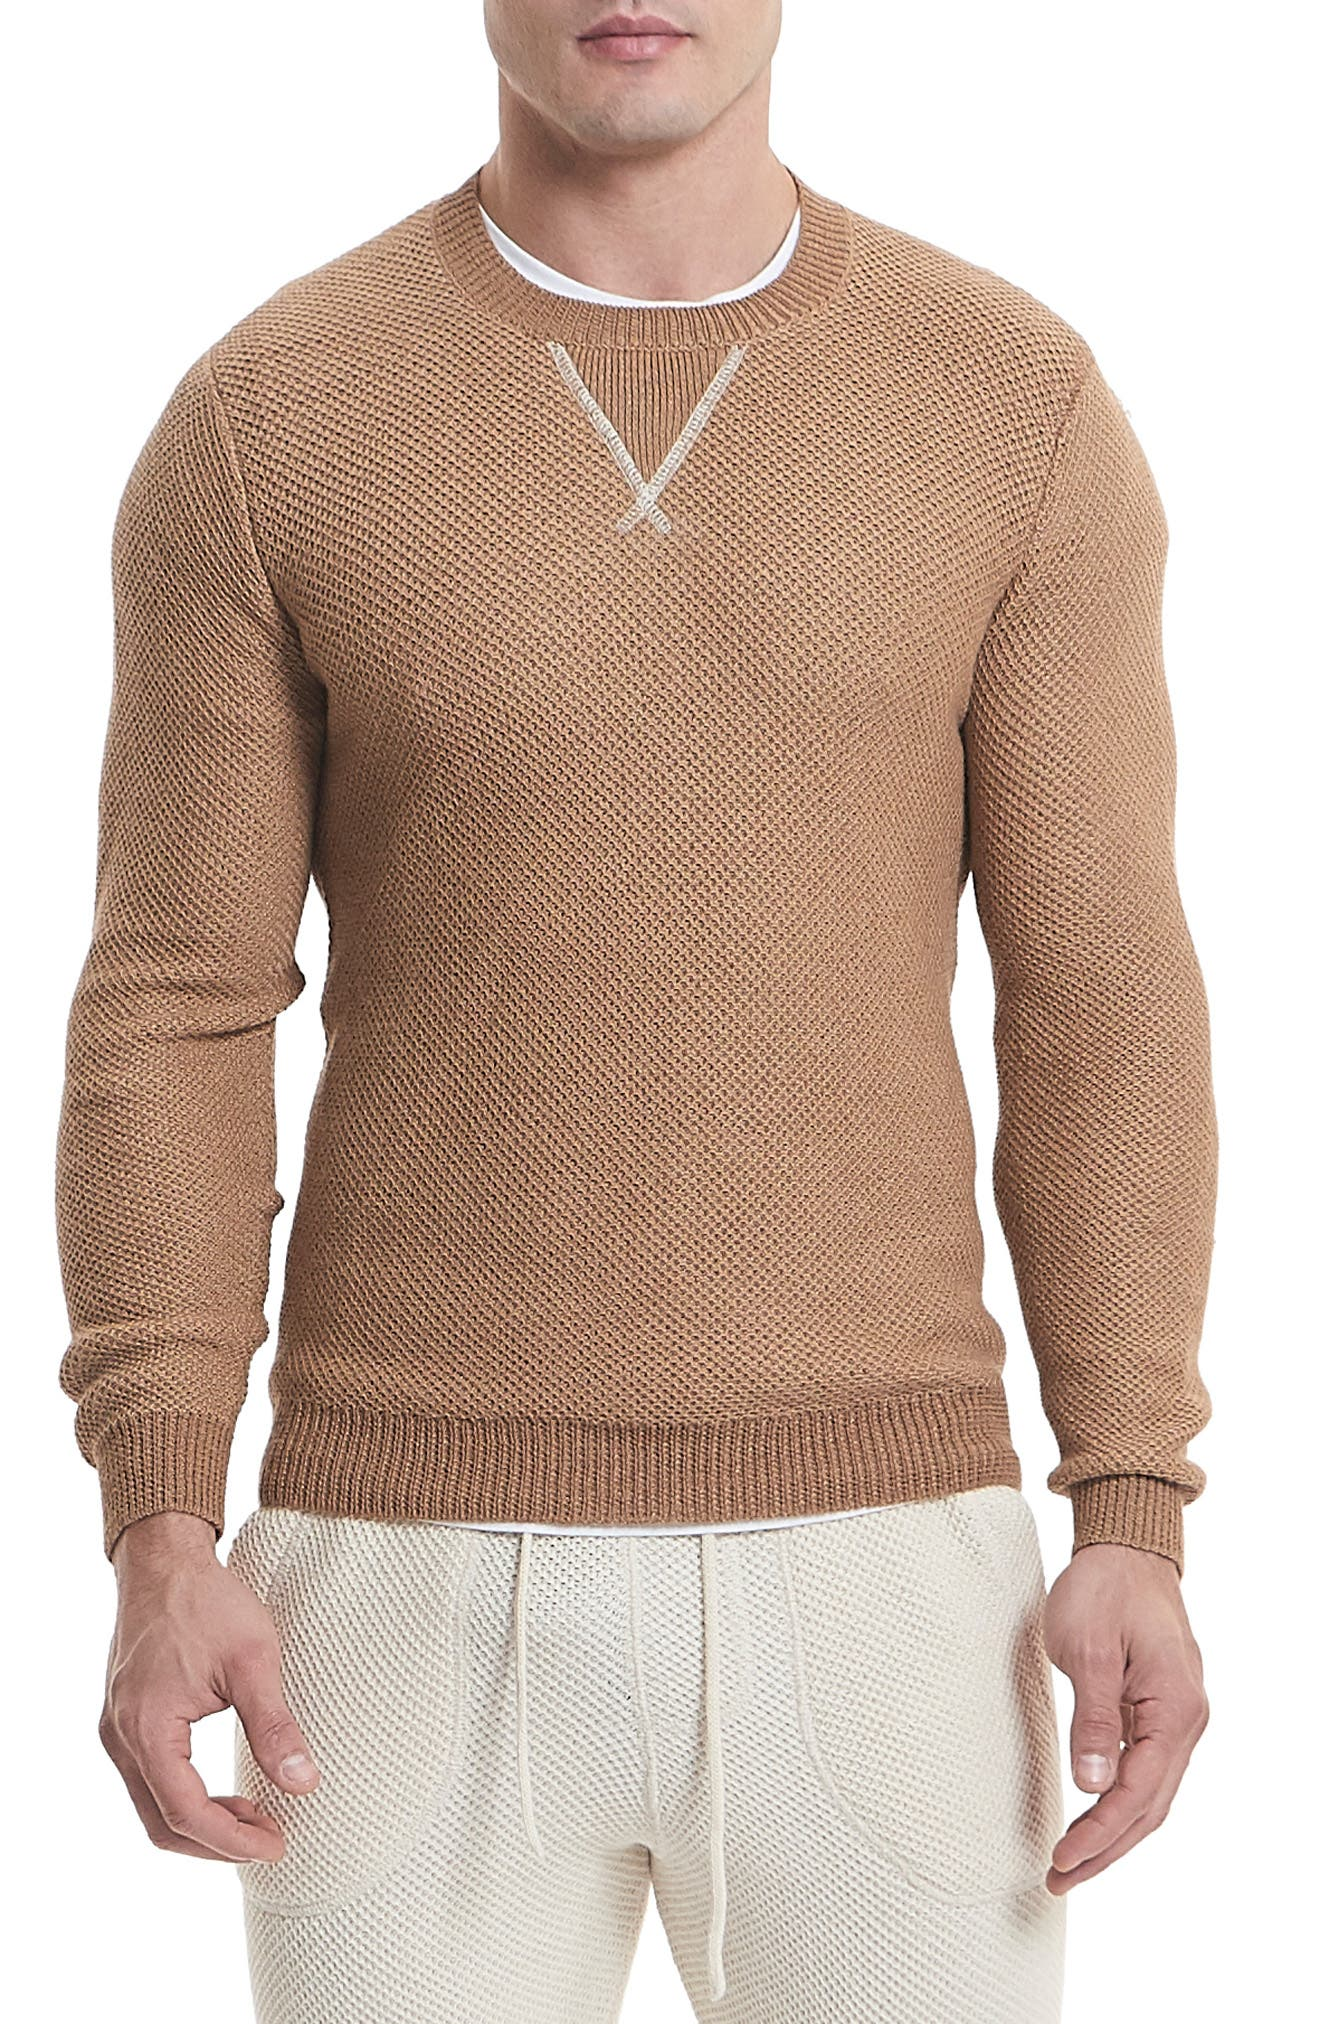 GOODLIFE Slim Fit Crewneck Sweater in Whey